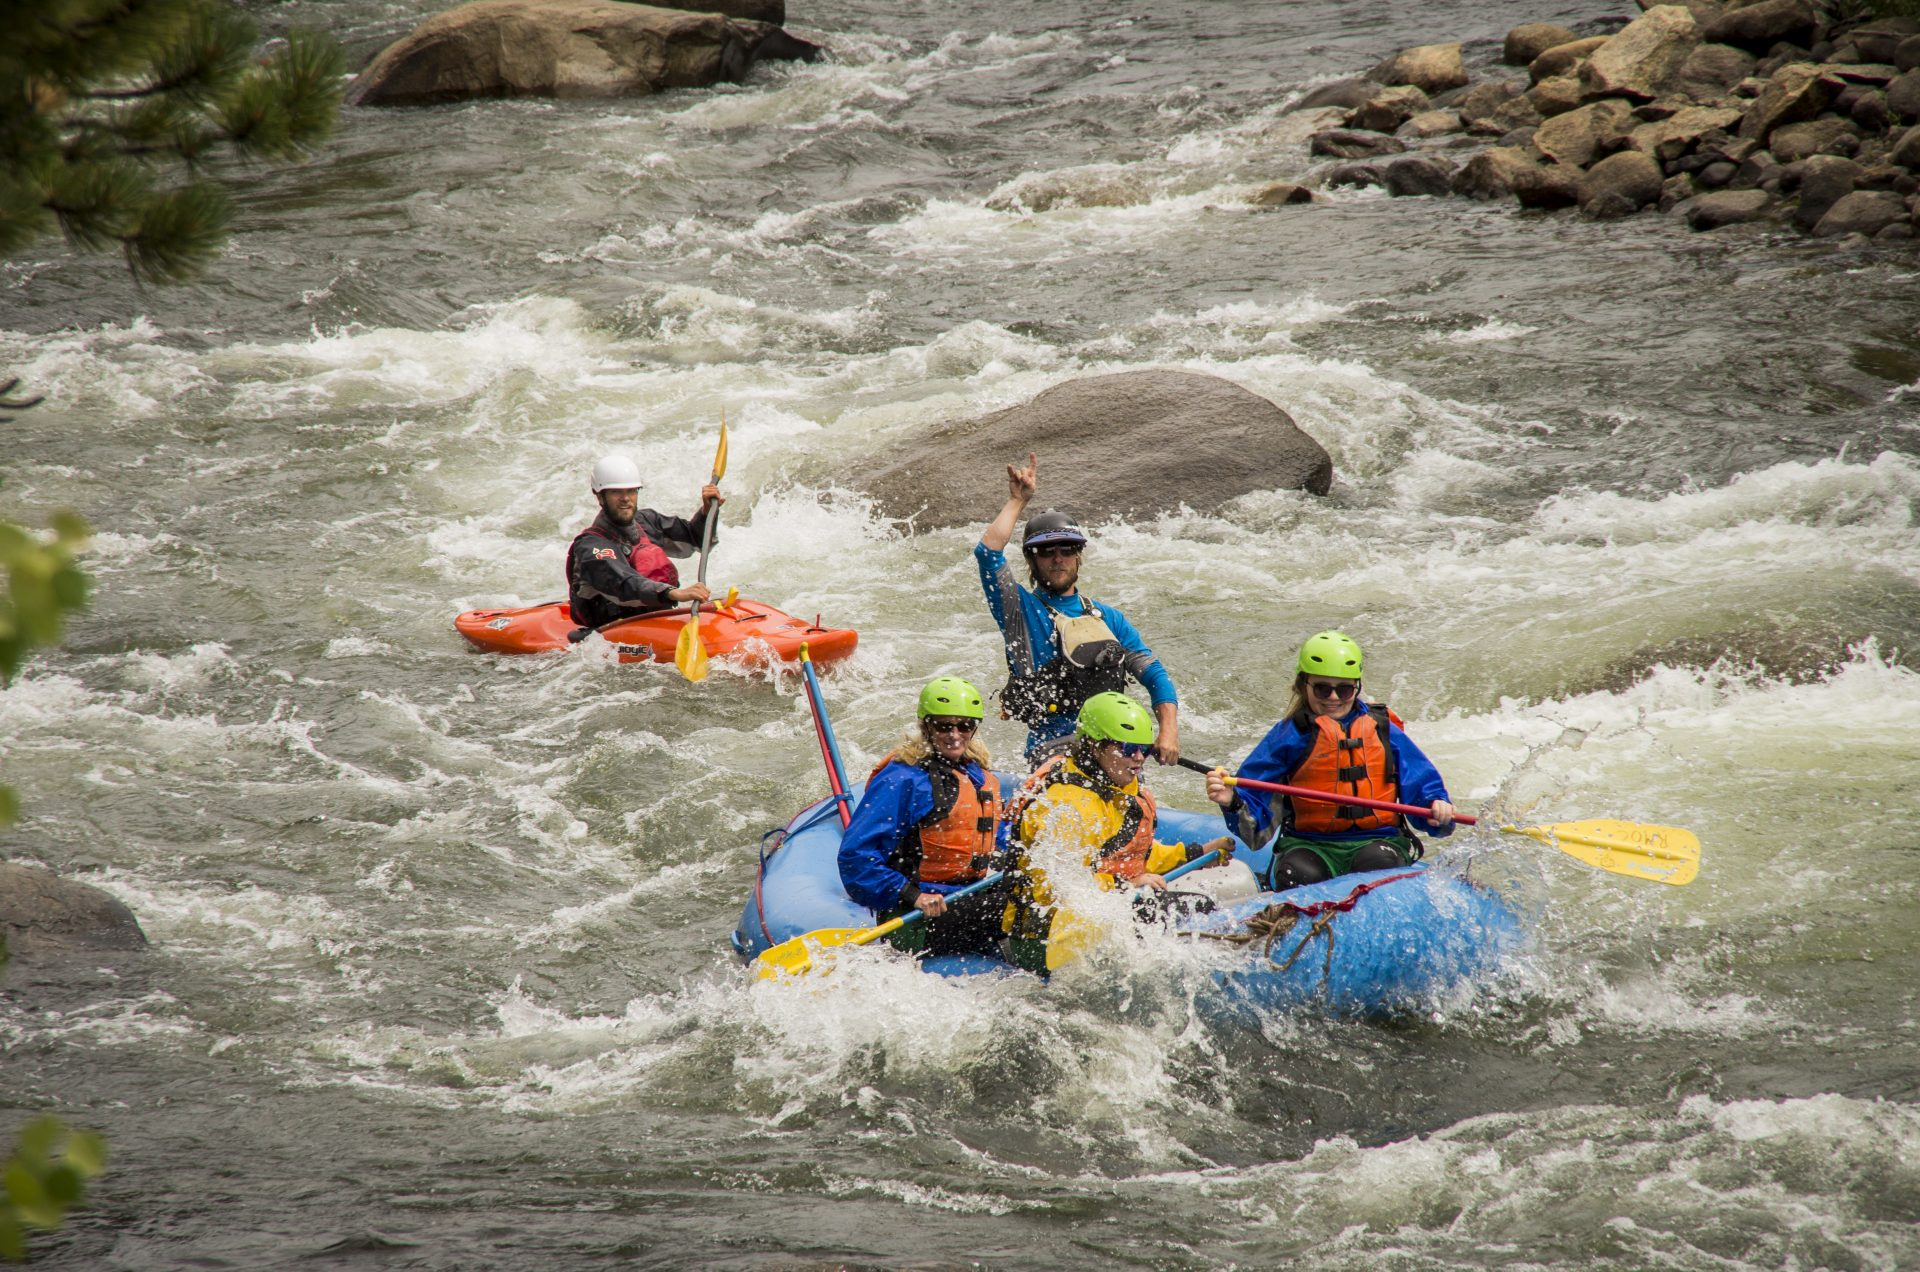 The Numbers Whitewater Rafting